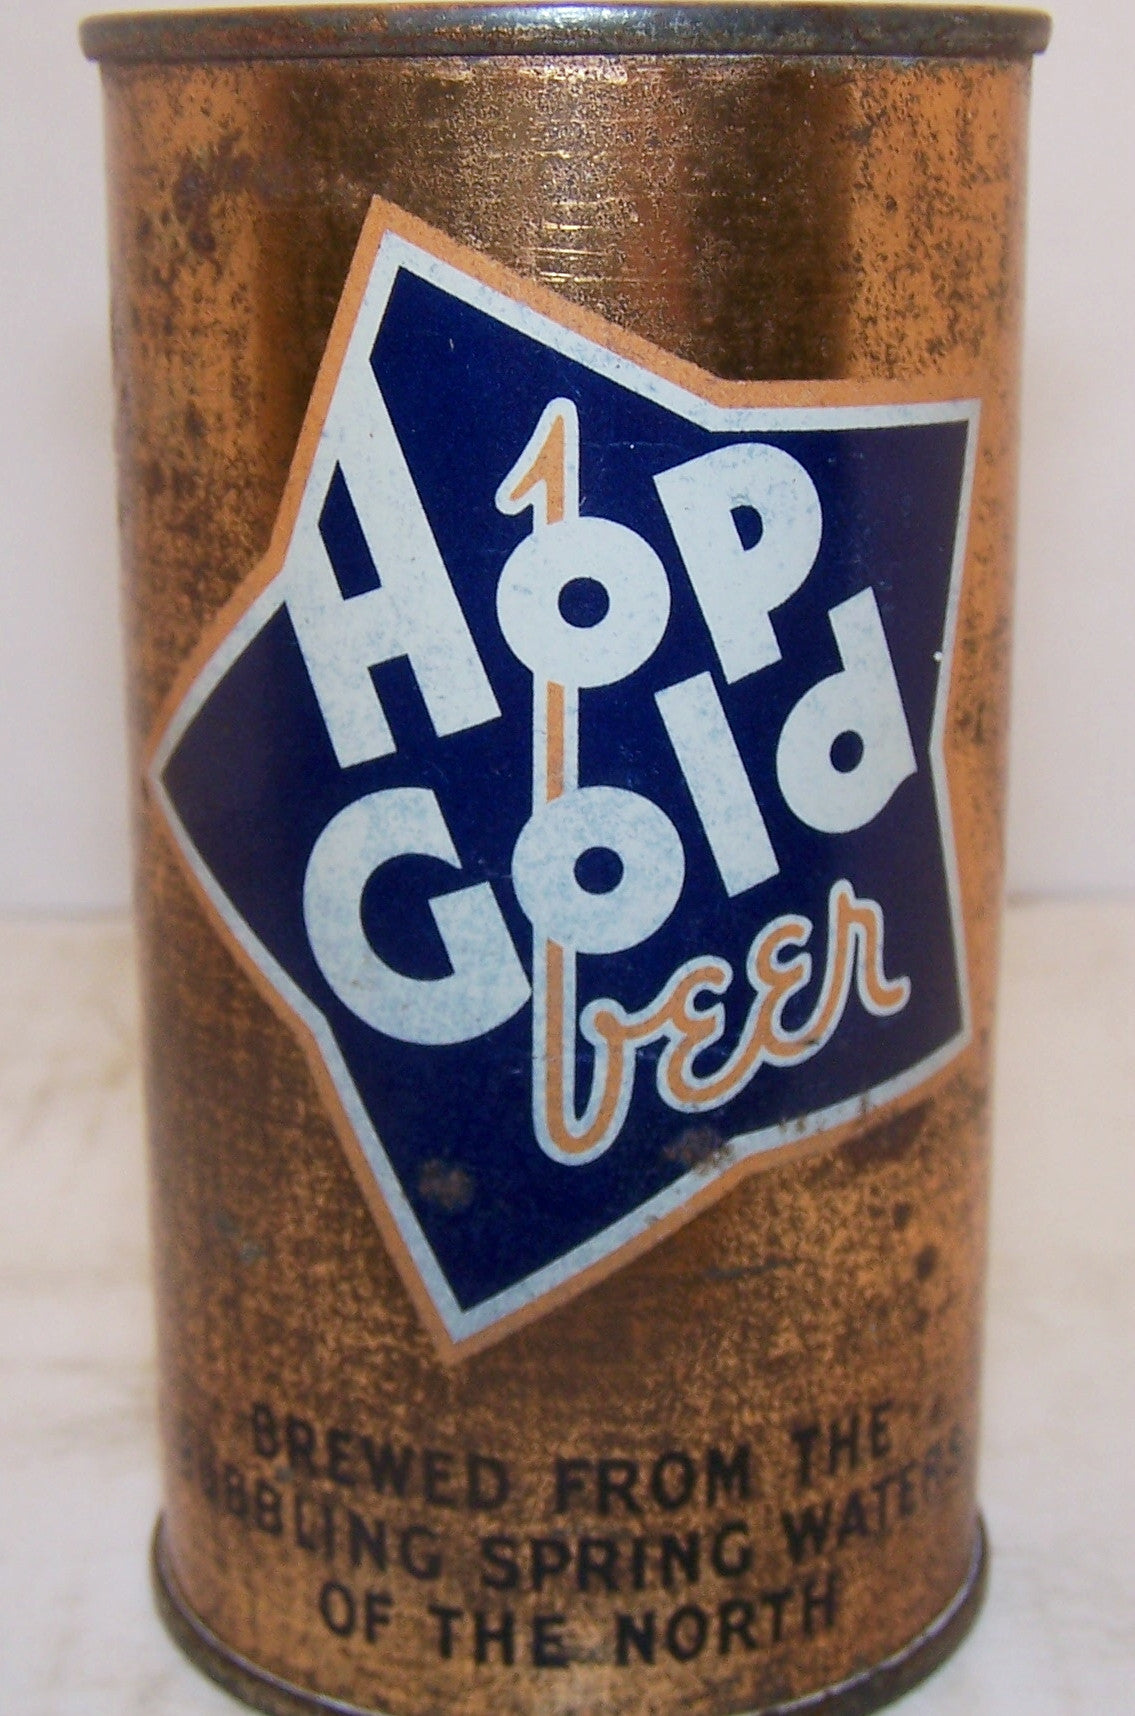 Hop Gold Beer (Big Star) Lilek page # 403, Grade 2+ Sold on 9/5/15